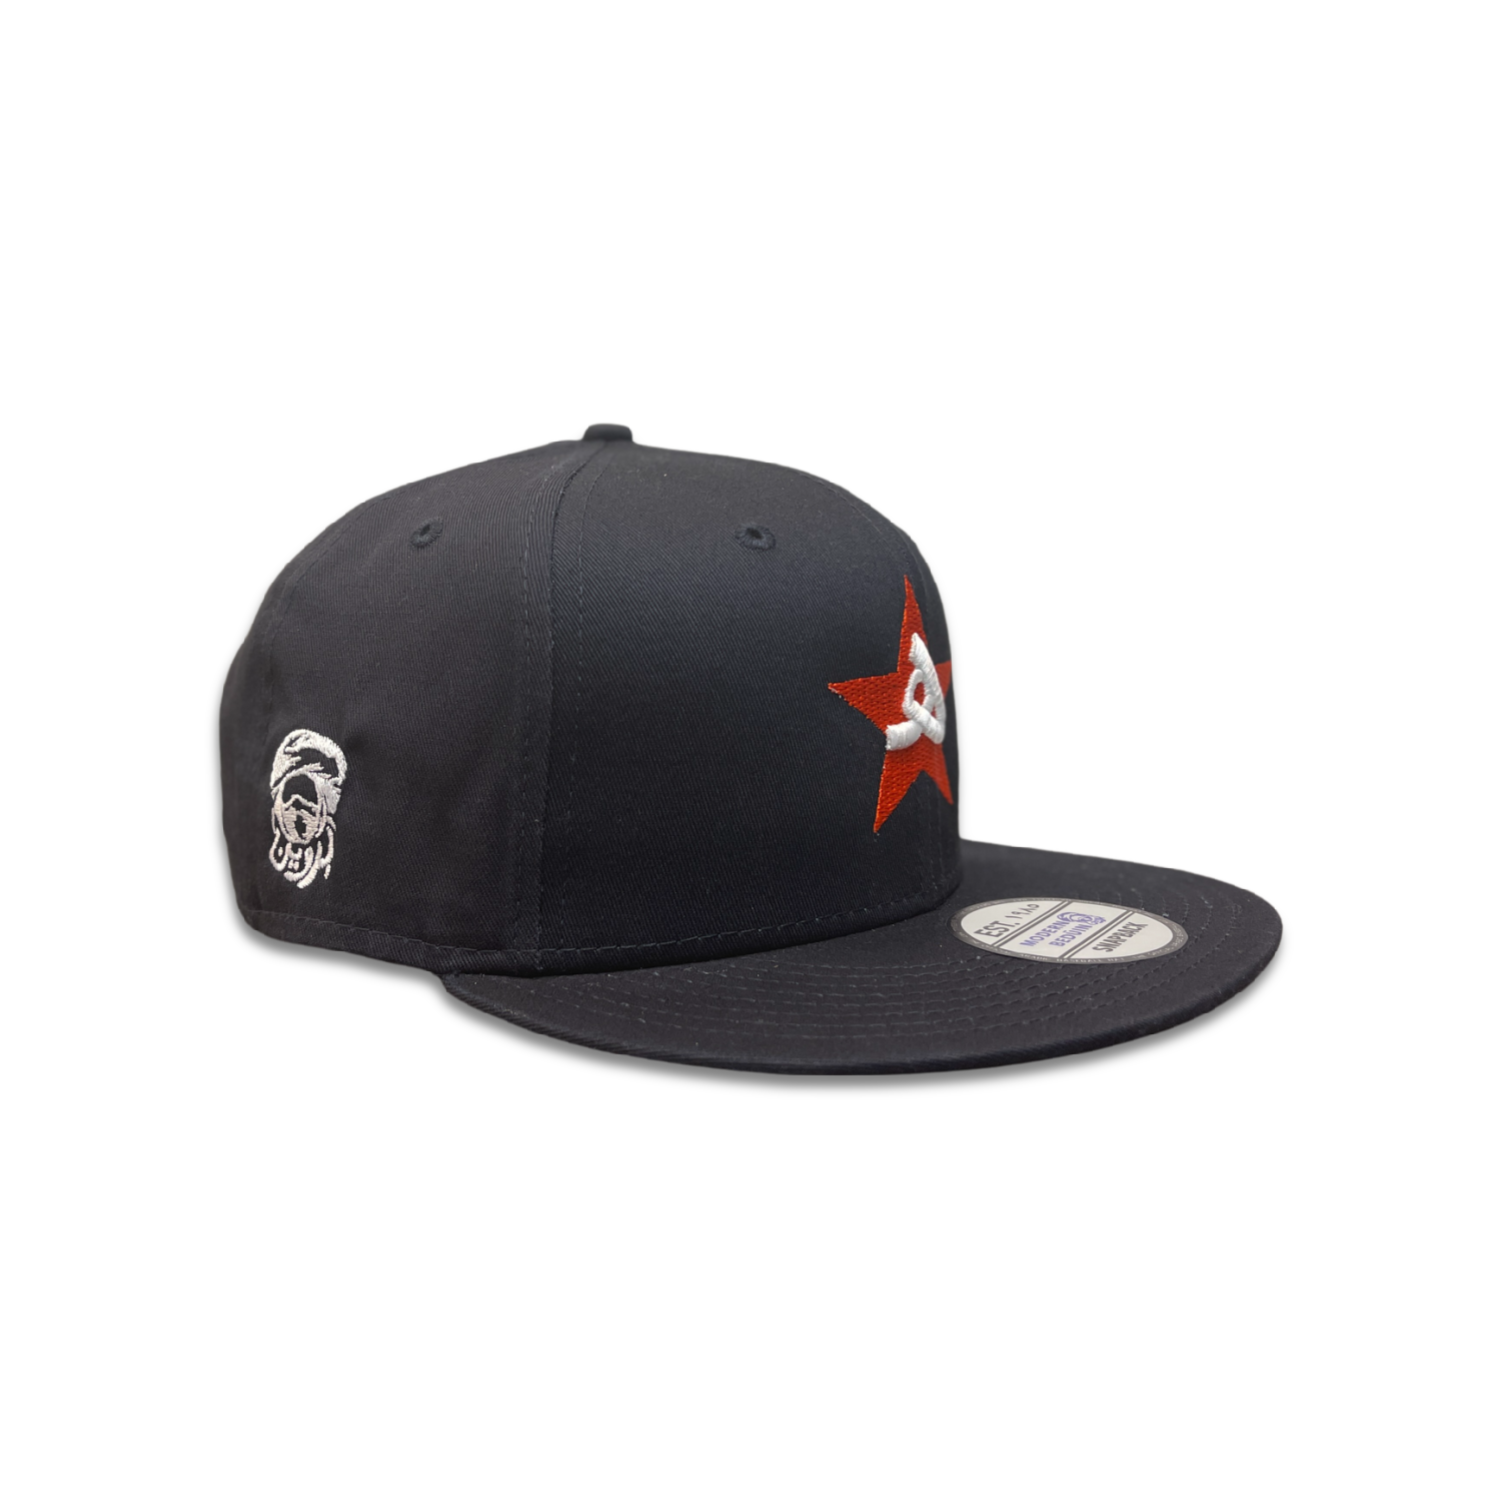 Houston Bedūins (هيوستن) Arabic Baseball Hat